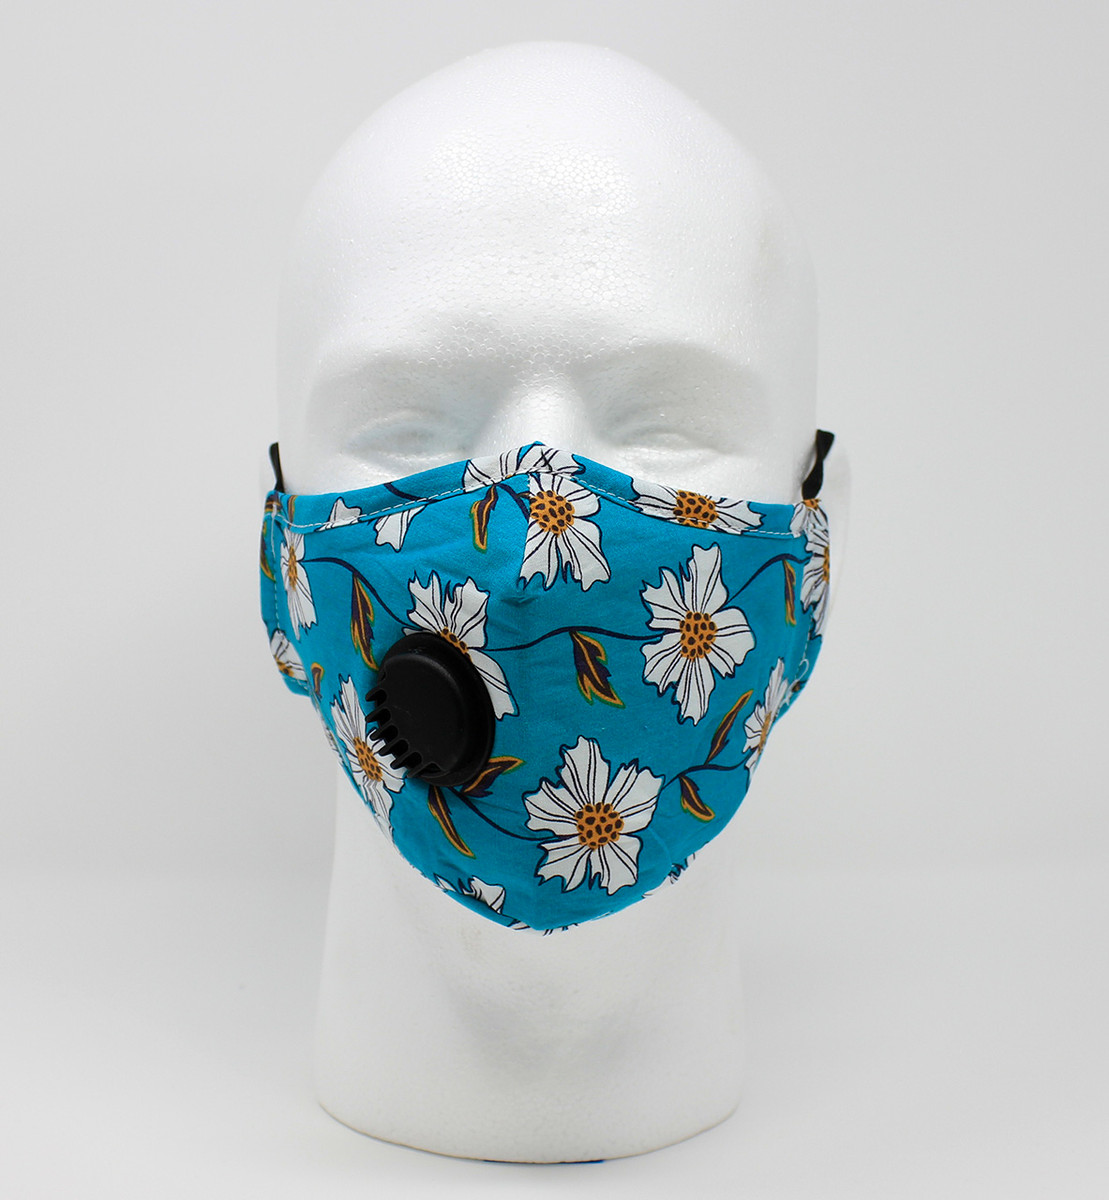 Vented Graphic Fashion Mask - Turquoise/Gold Floral